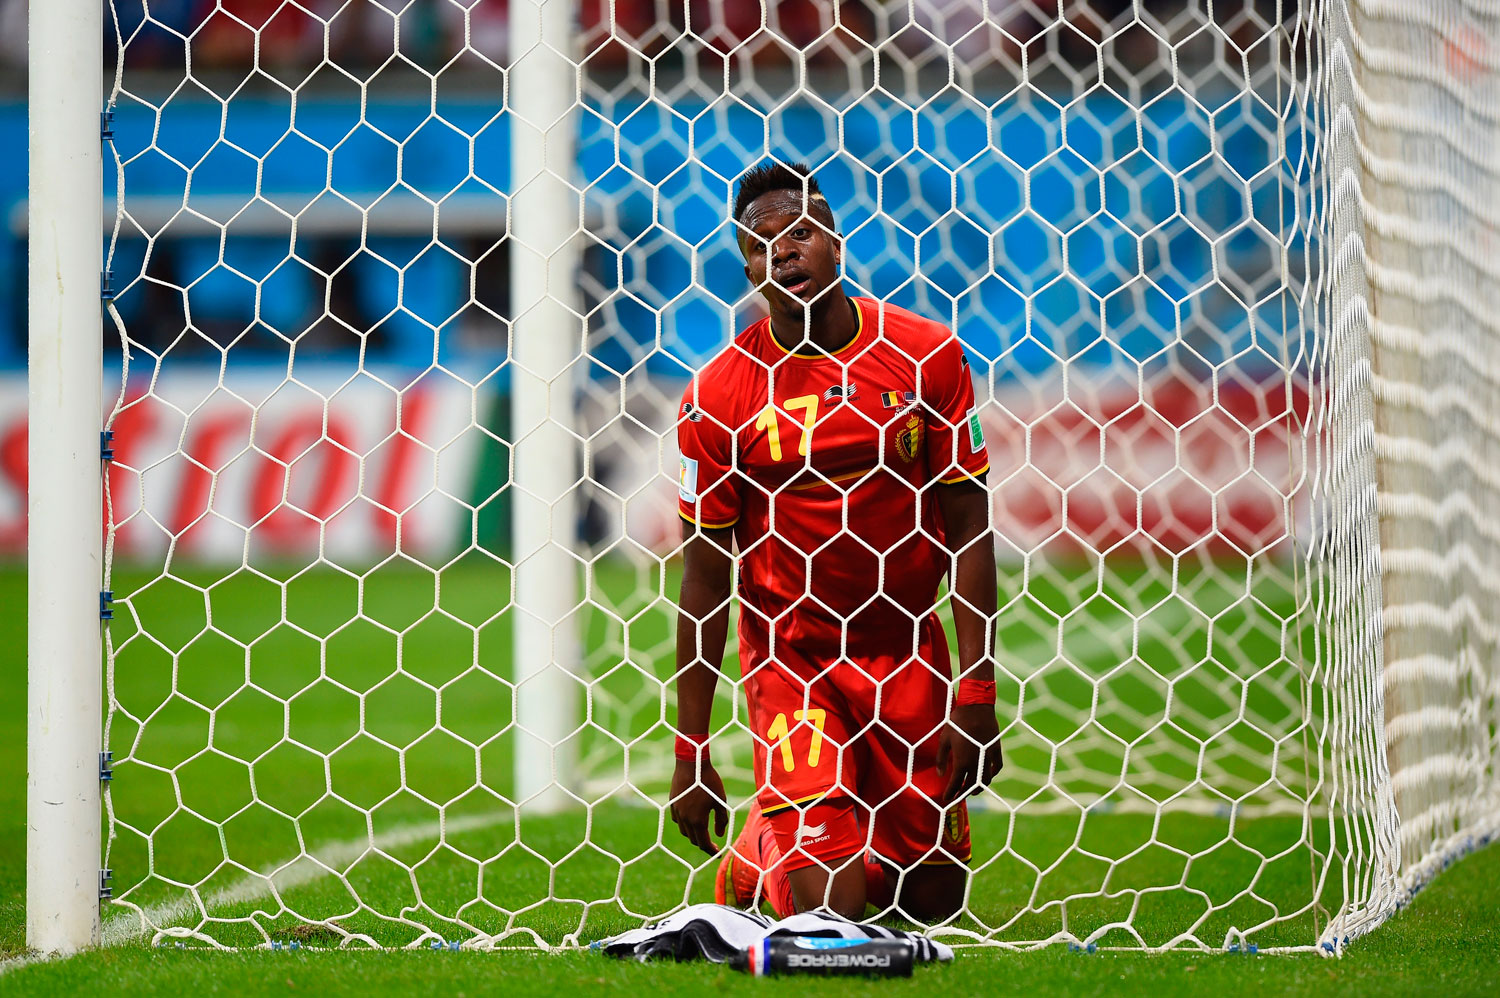 Divock Origi of Belgium reacts after a missed chance during the match between Belgium and the United States at Arena Fonte Nova on July 1, 2014 in Salvador, Brazil.